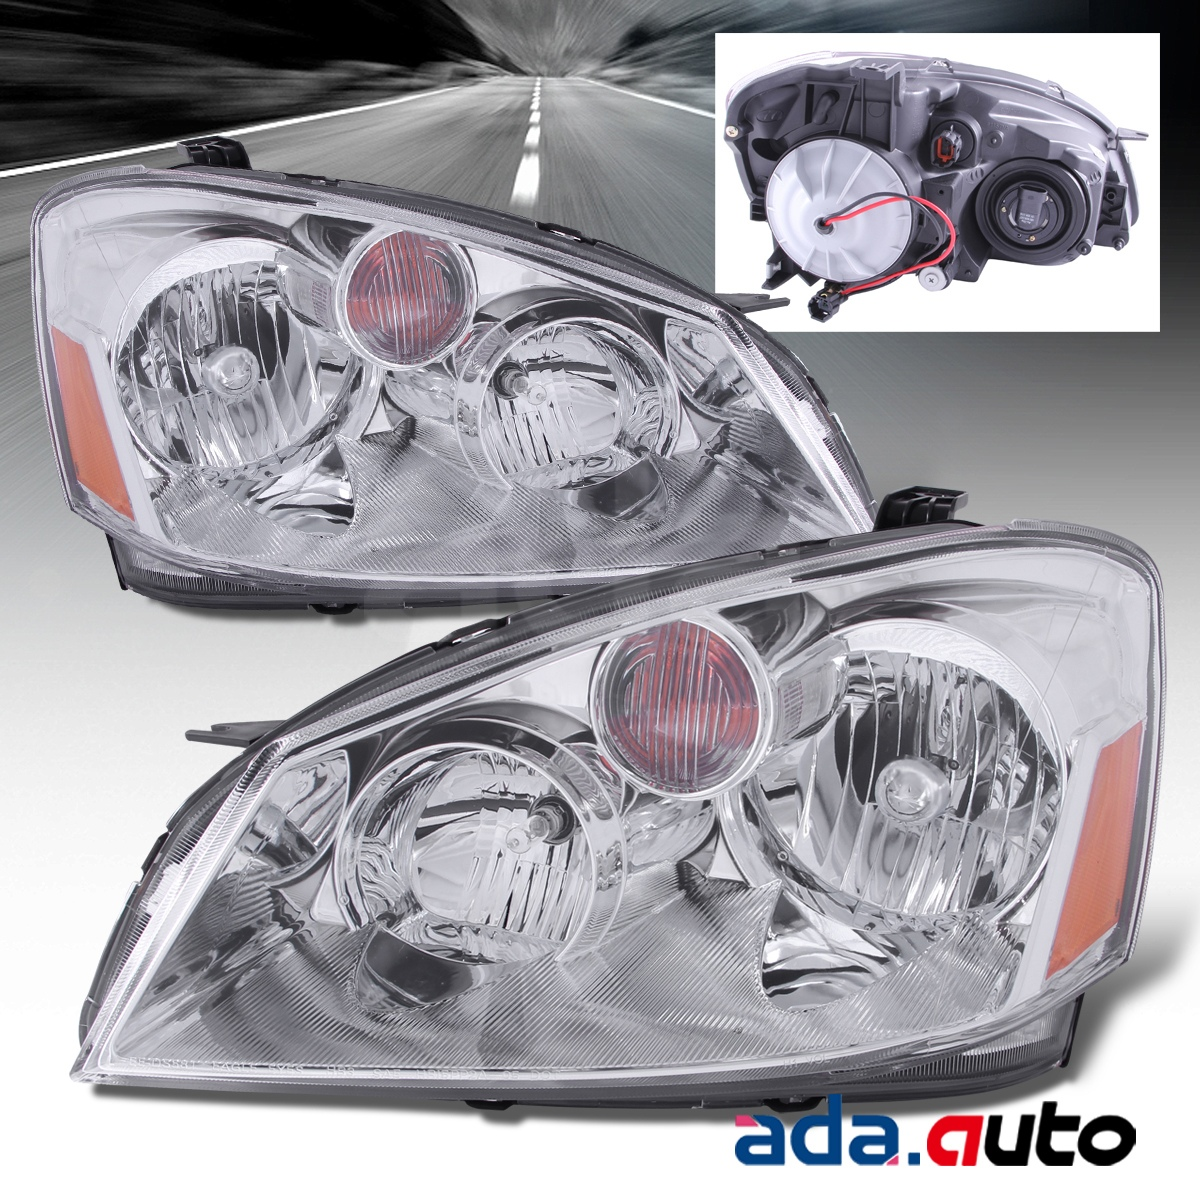 Headlights For 2006 Nissan Altima: For 2005-2006 Nissan Altima Chrome Headlights+LED DRL Fog